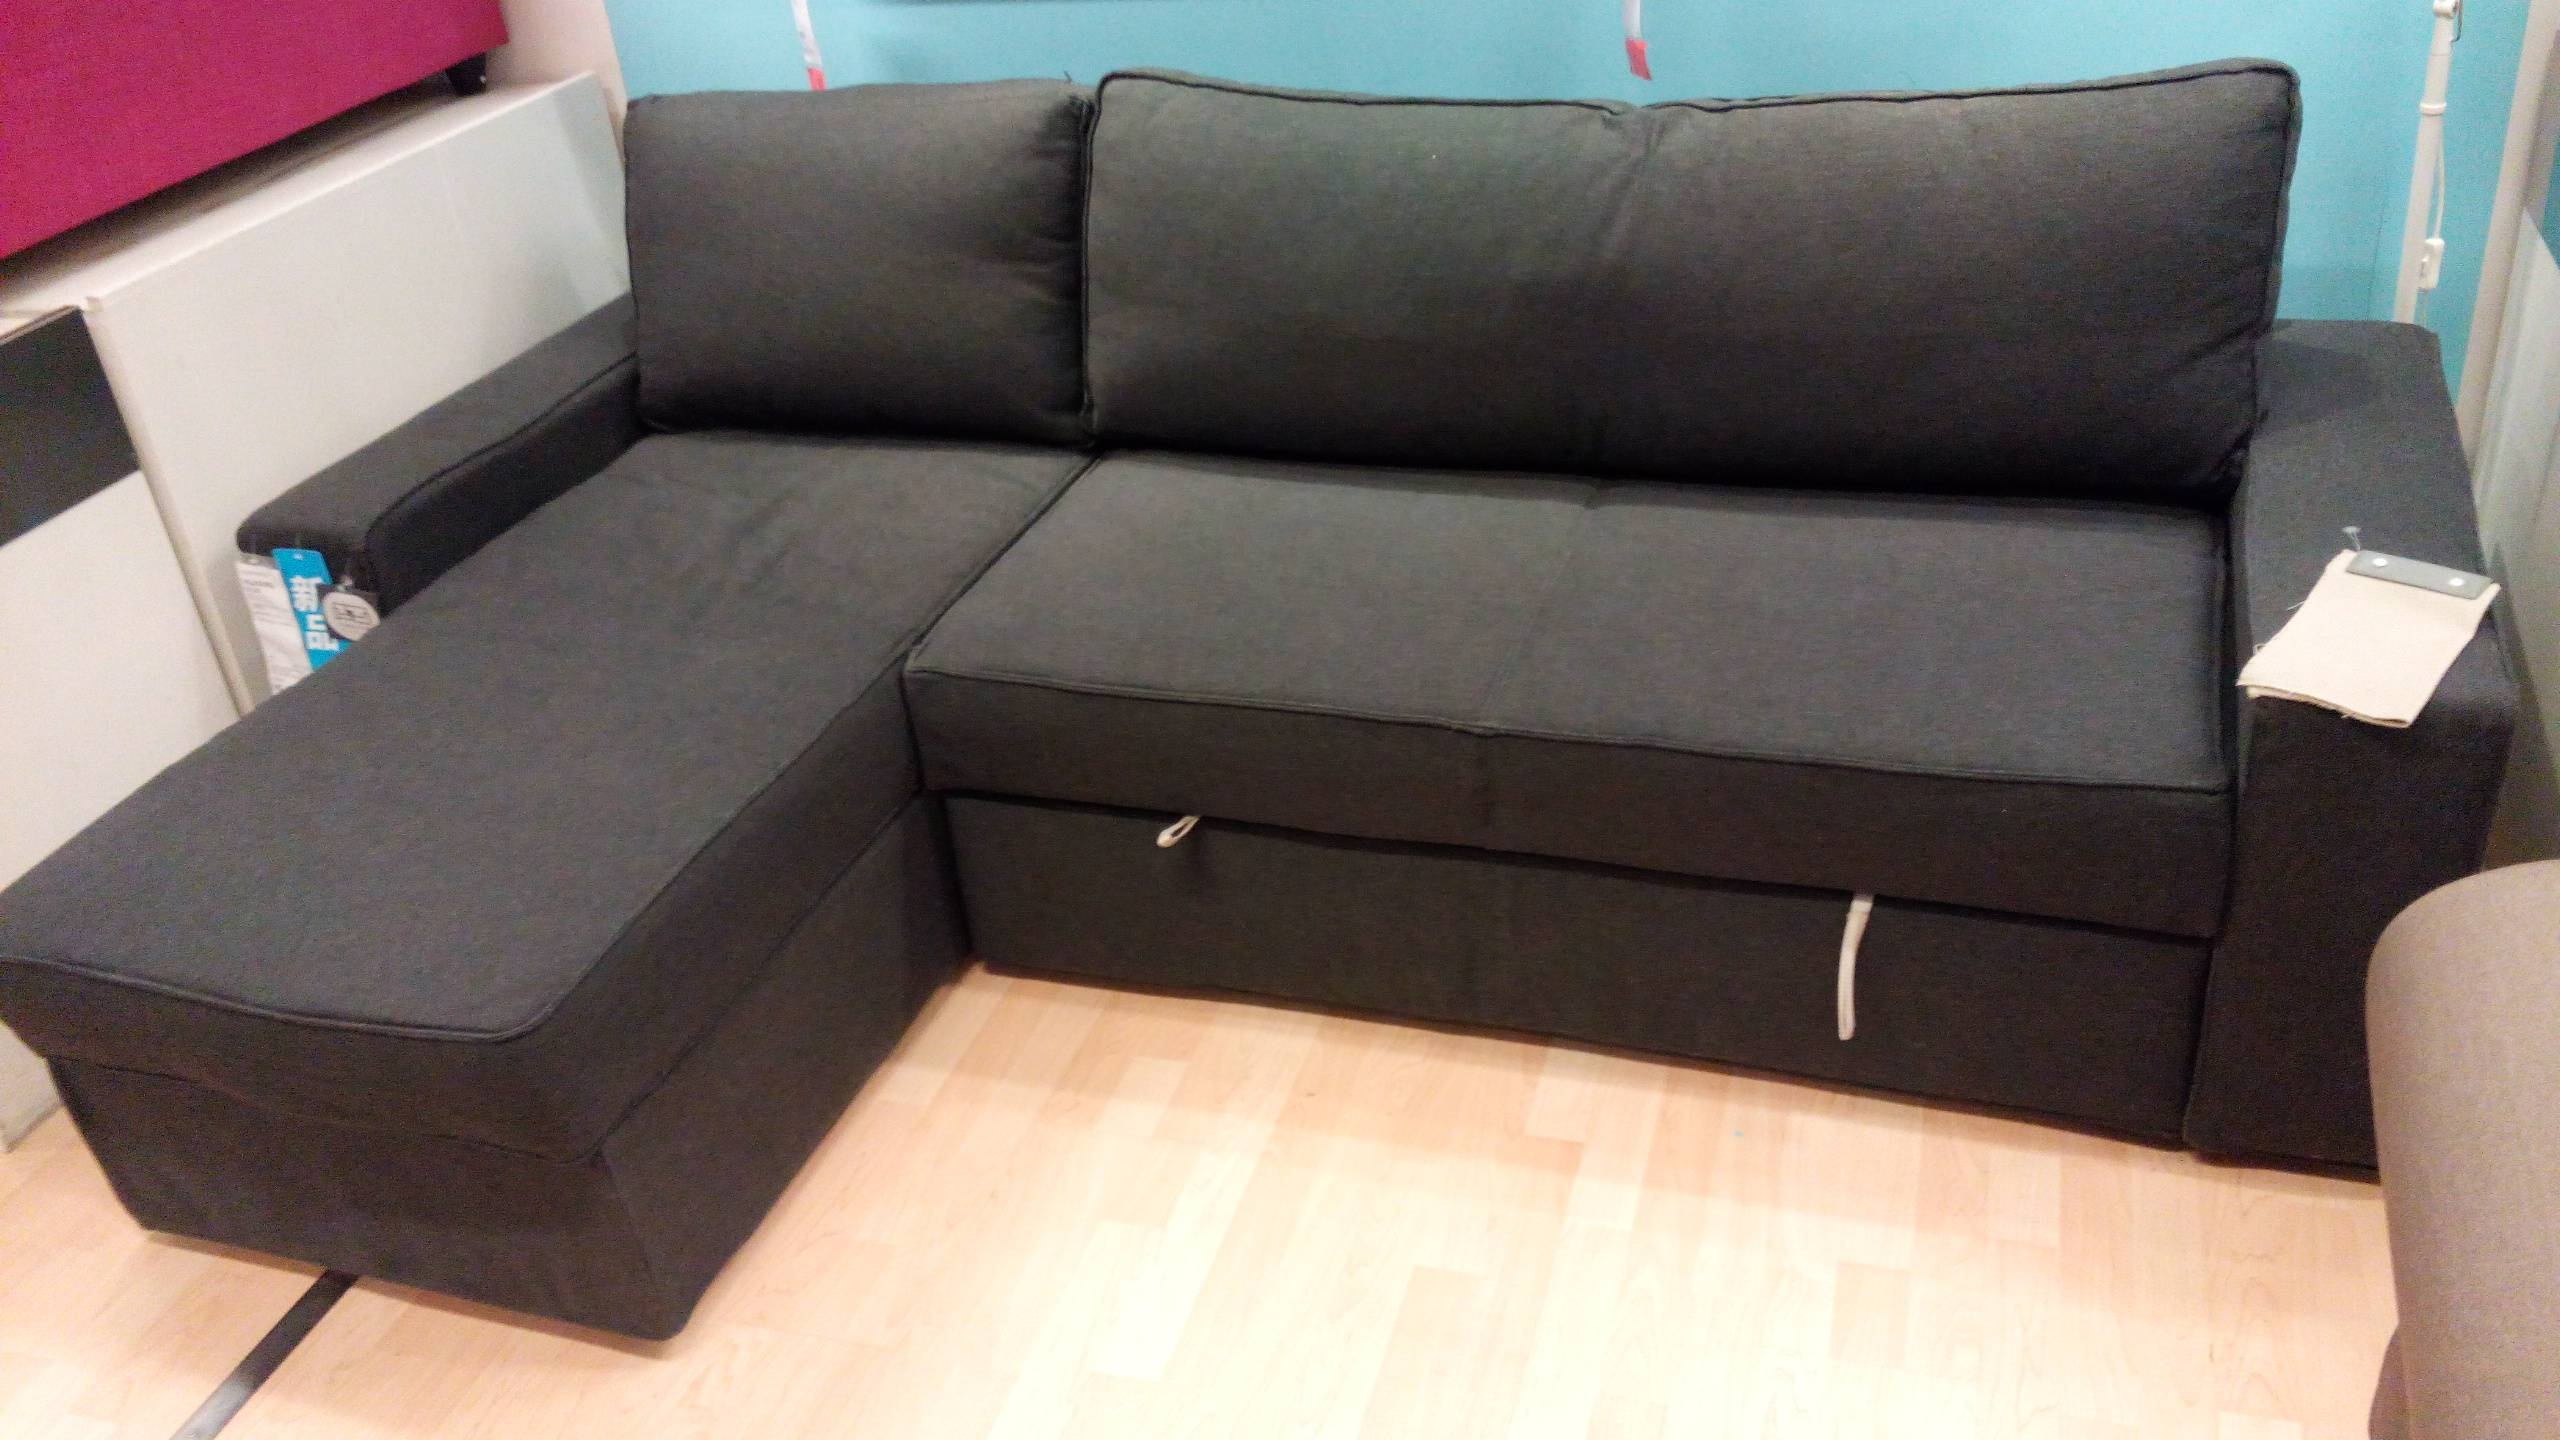 Sofas: Sleeper Sofas Ikea That Great For A Quick Snooze Or Night with regard to Sleeper Sectional Sofa Ikea (Image 23 of 25)